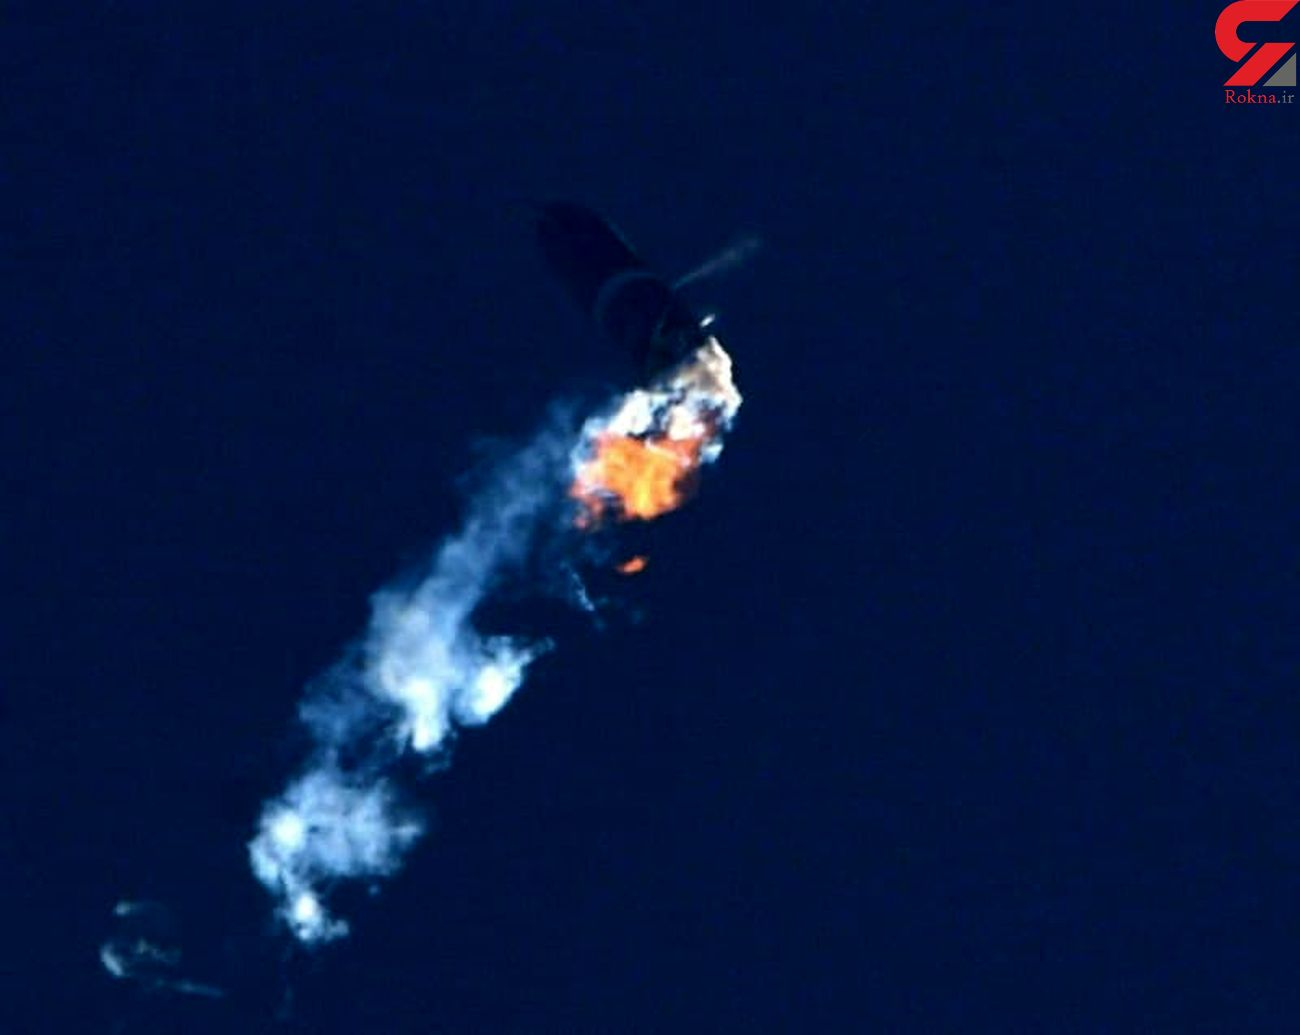 US SpaceX Starship prototype rocket explodes in test launch